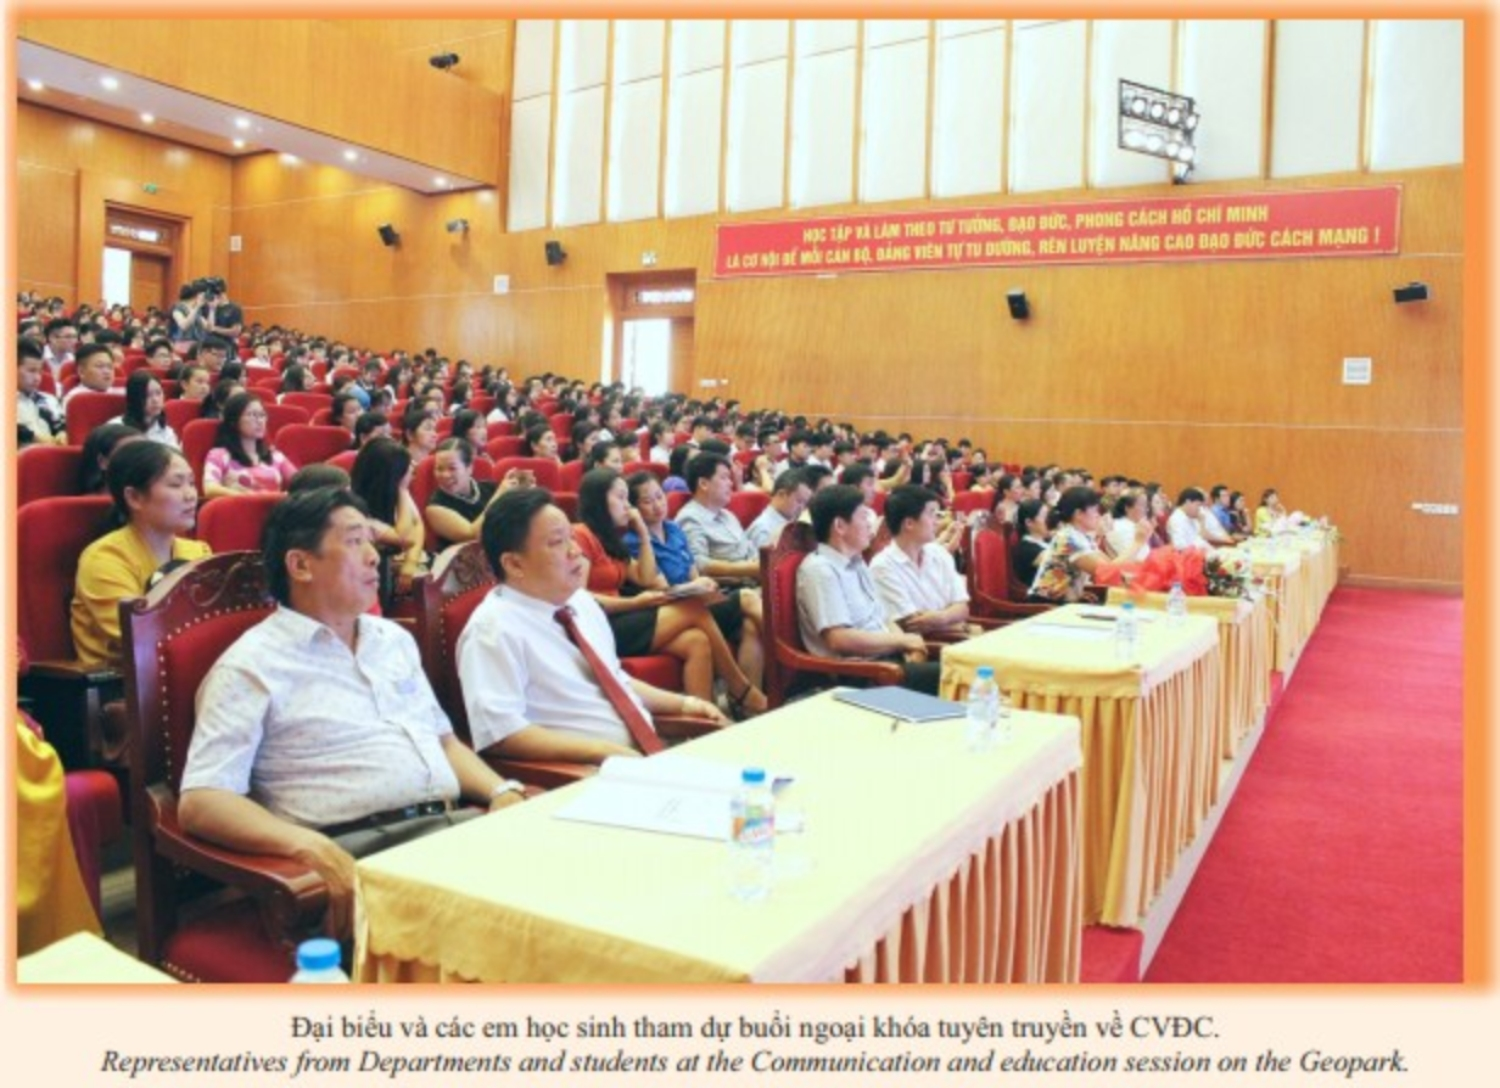 The Upper Secondary school for the Gifted organized the Communication and education on Non nuoc Cao Bang UNESCO global geopark